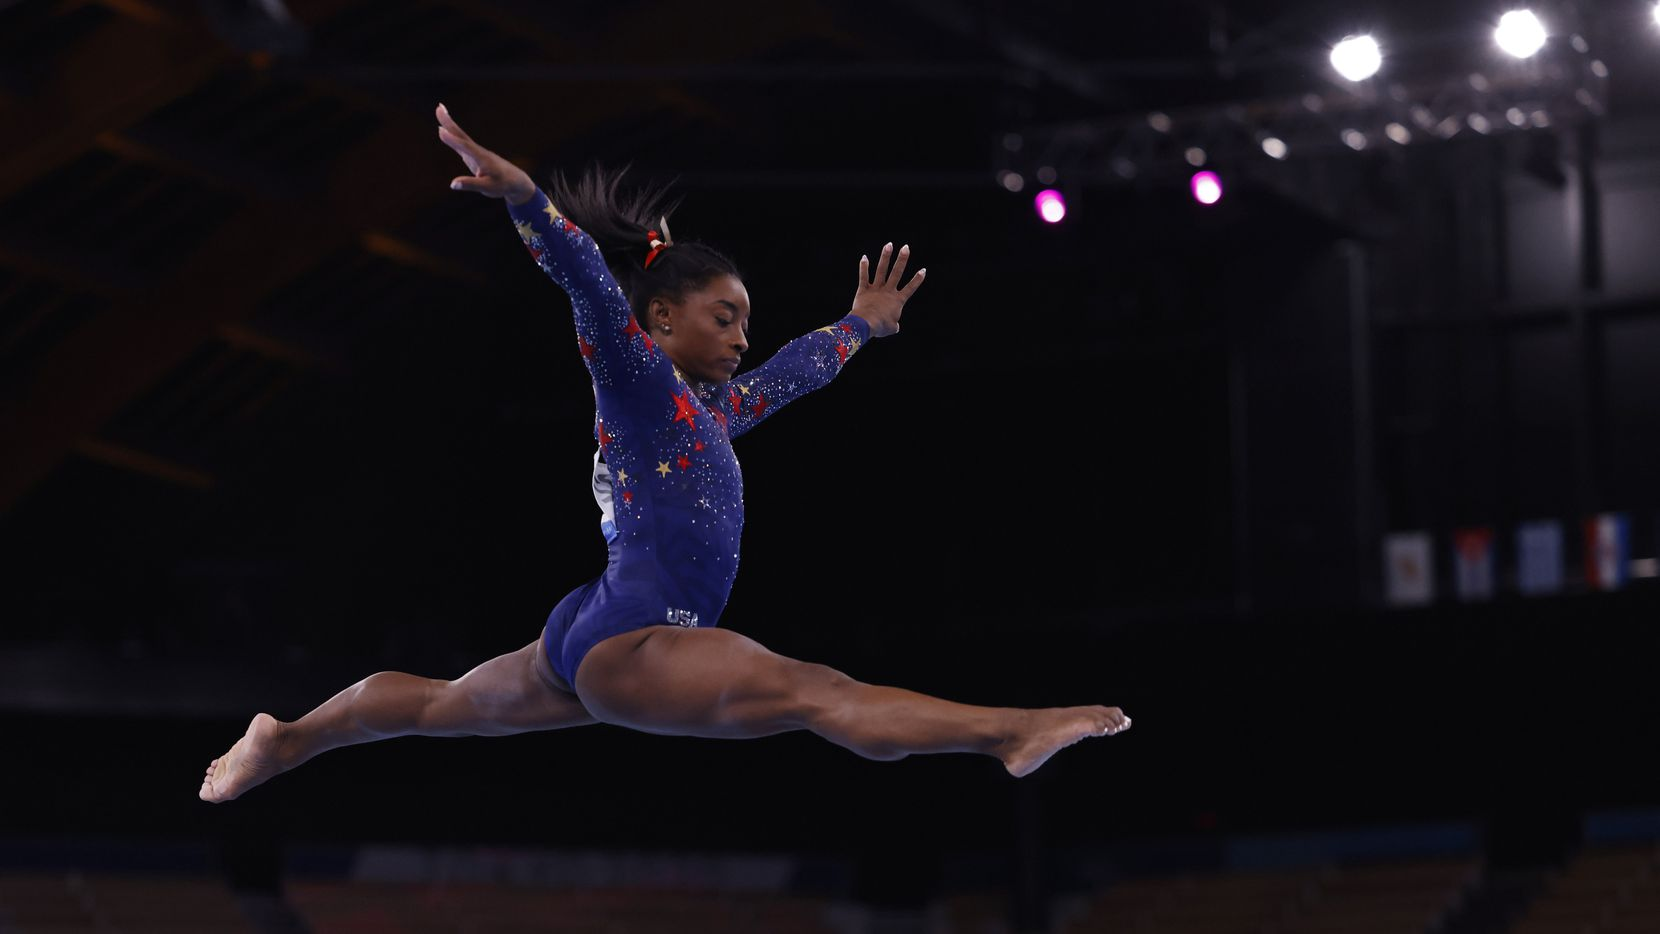 USA's Simone Biles competes on the balance beam in a women's gymnastics event during the postponed 2020 Tokyo Olympics at Ariake Gymnastics Centree on Sunday, July 25, 2021, in Tokyo, Japan.